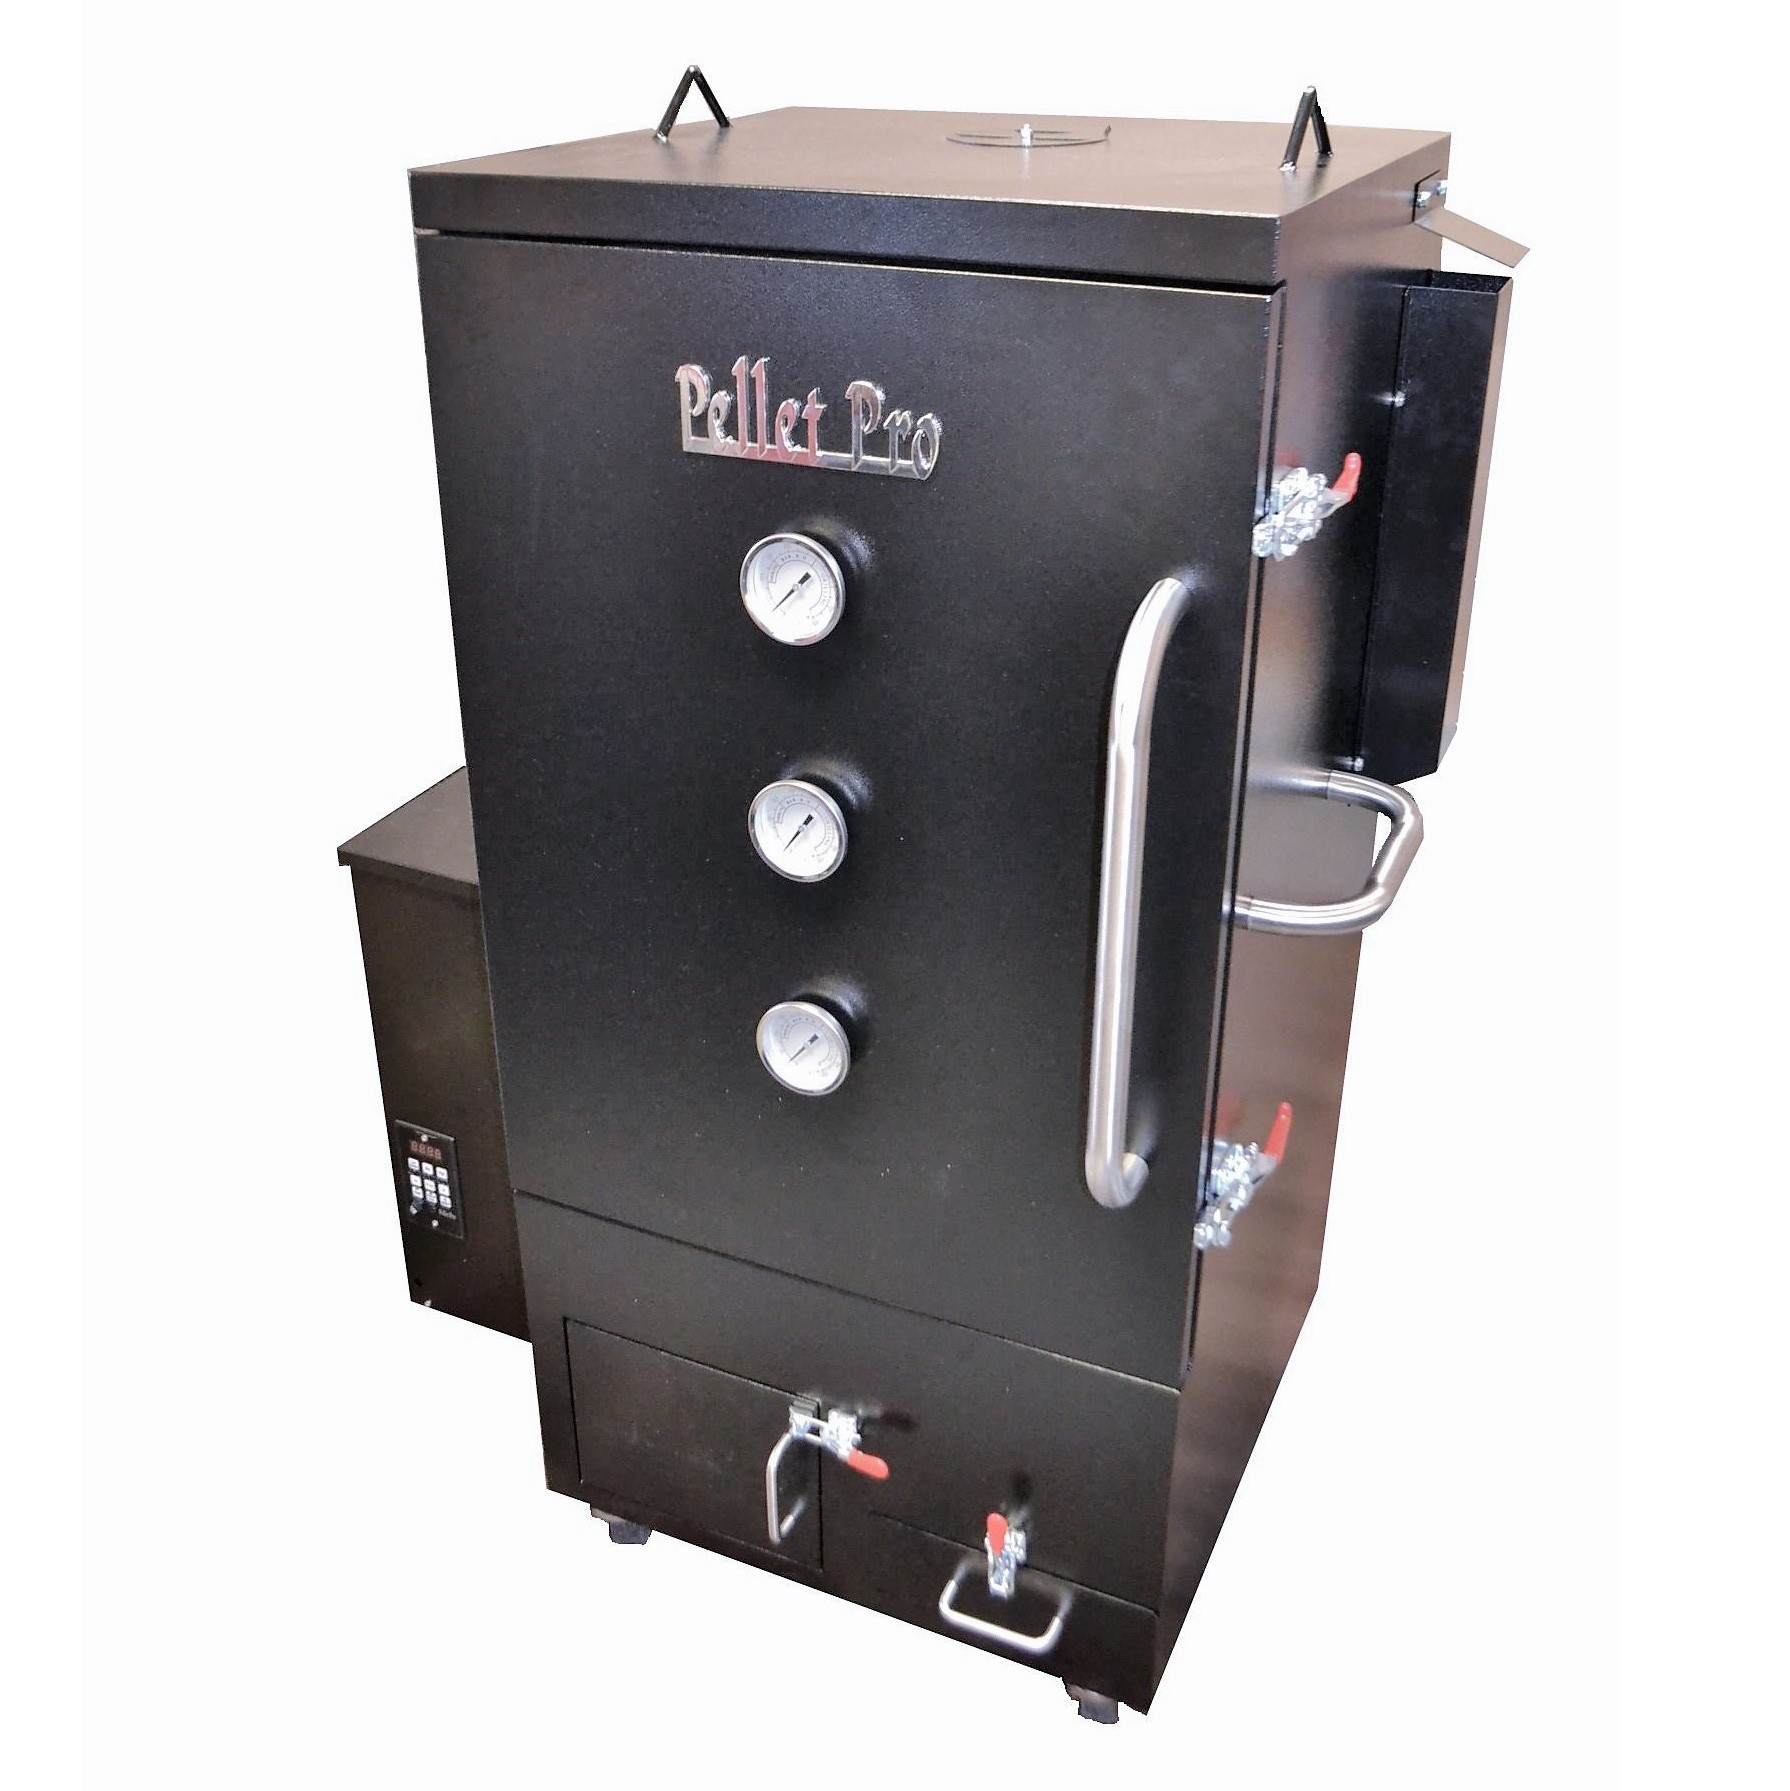 The Pellet Pro® Vertical Double Wall Cabinet Pellet Smoker with Free Cover